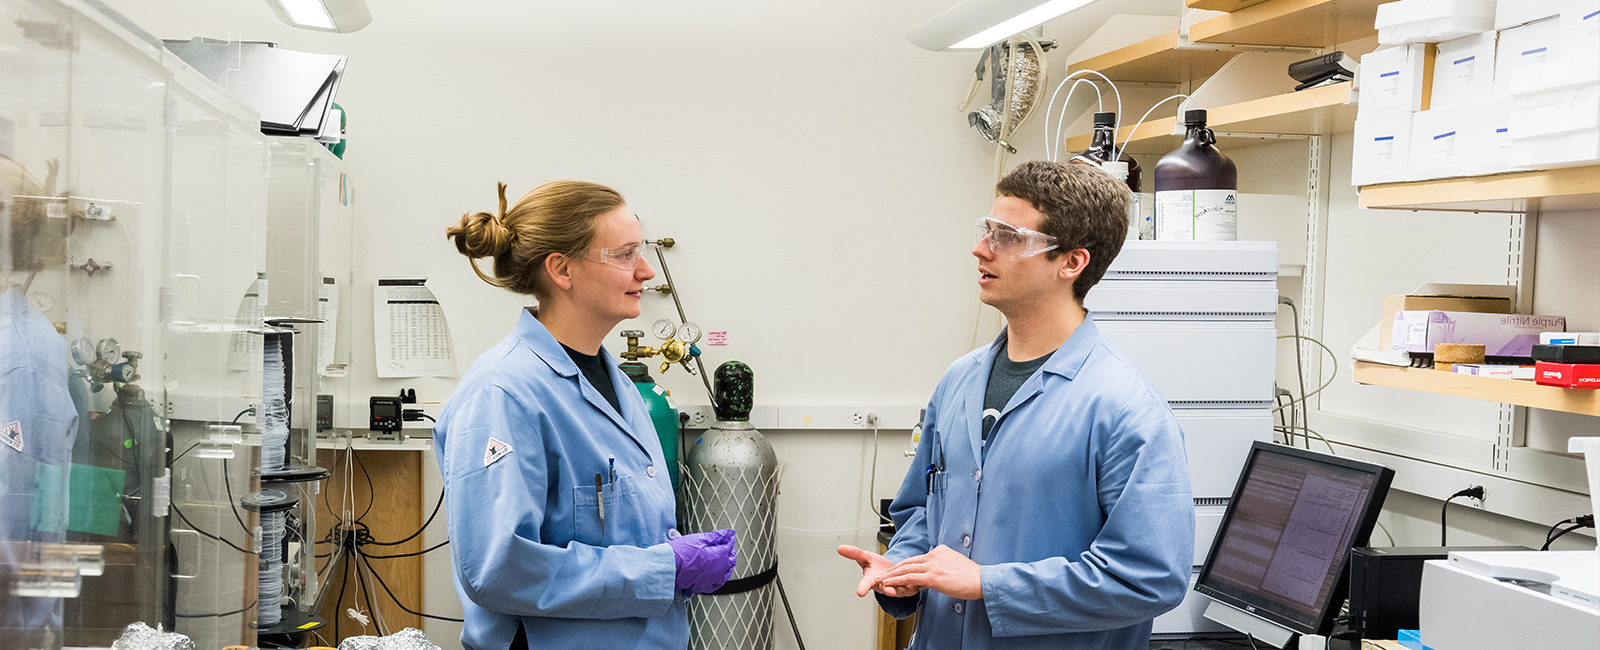 Two graduate students talk about their research in a lab.